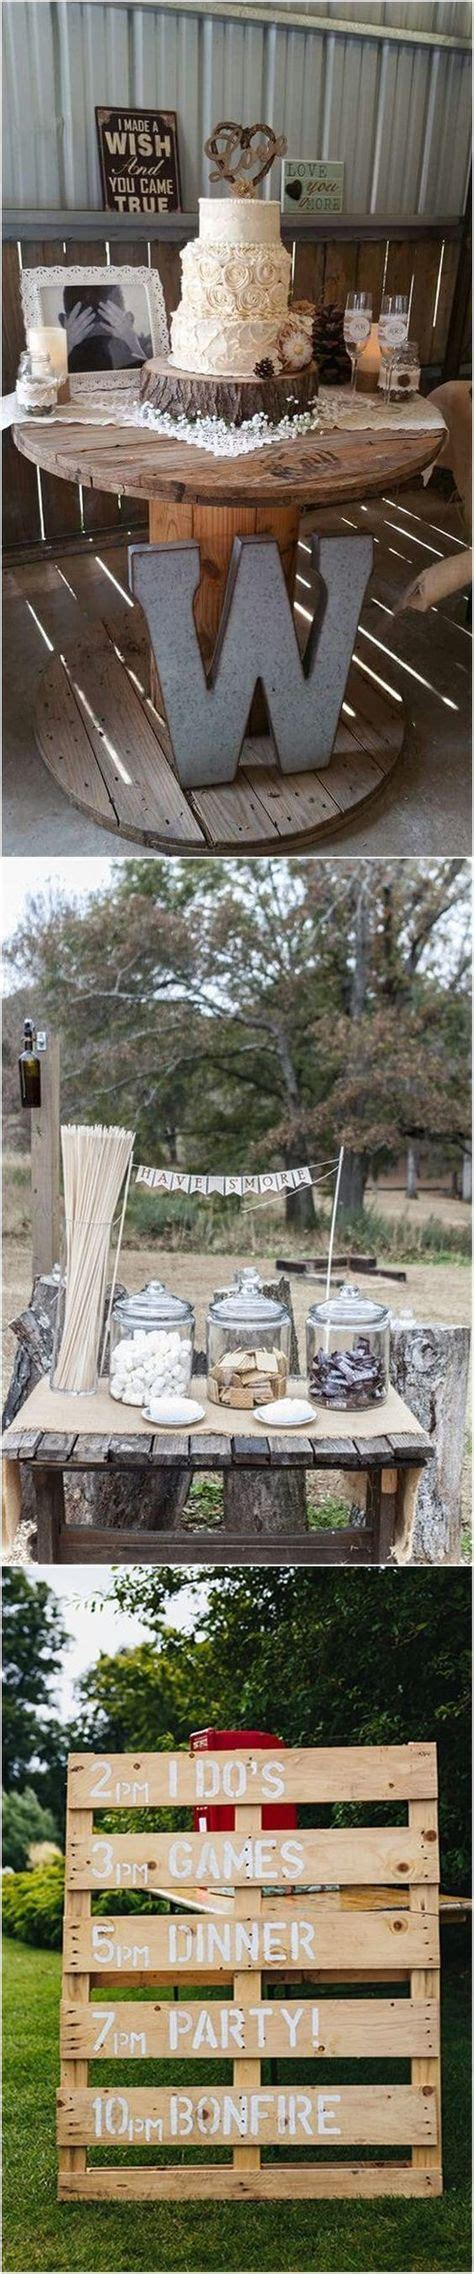 22 Rustic Backyard Wedding Decoration Ideas on A Budget   Backyard wedding decorations, Rustic